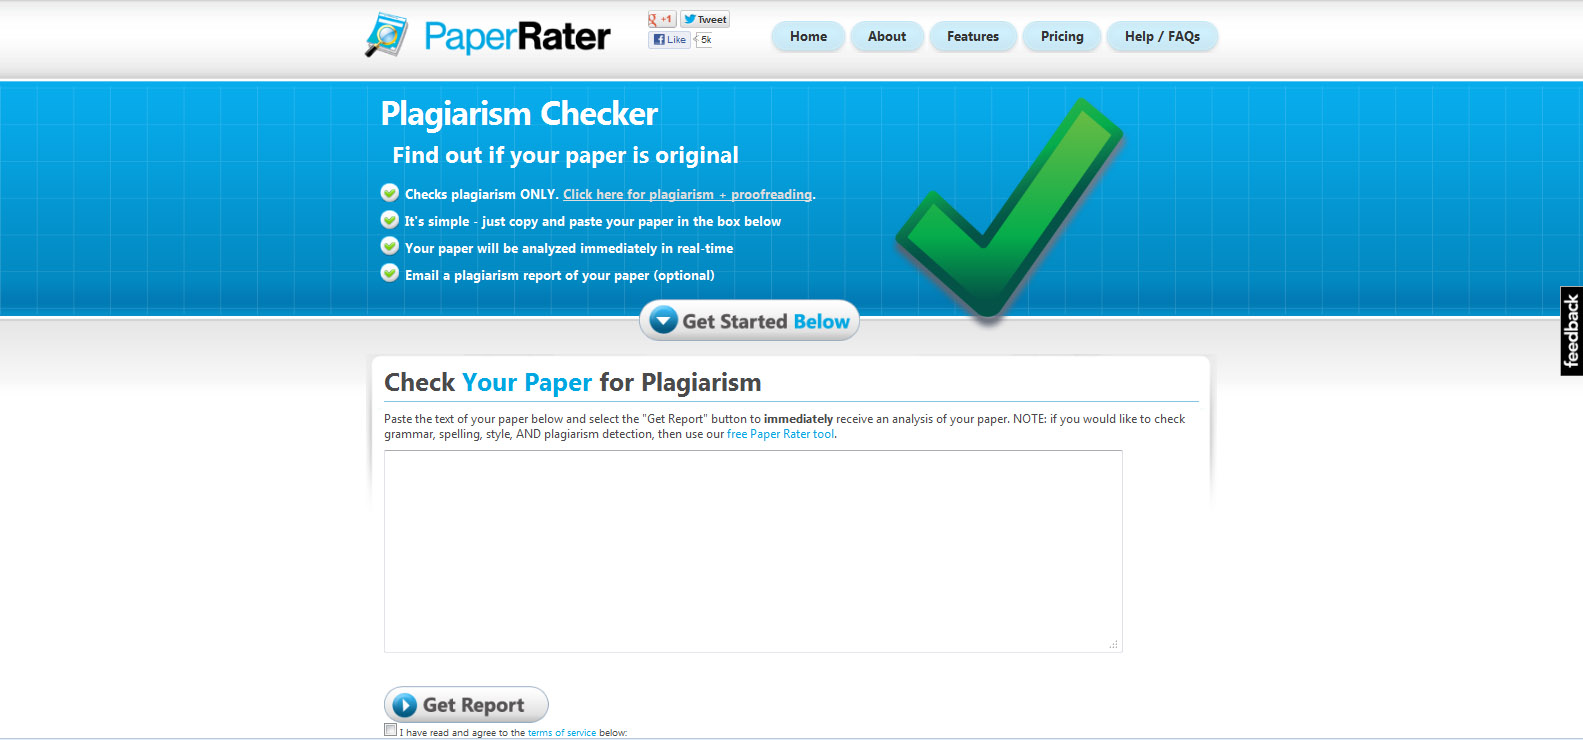 check the plagiarism of your paper